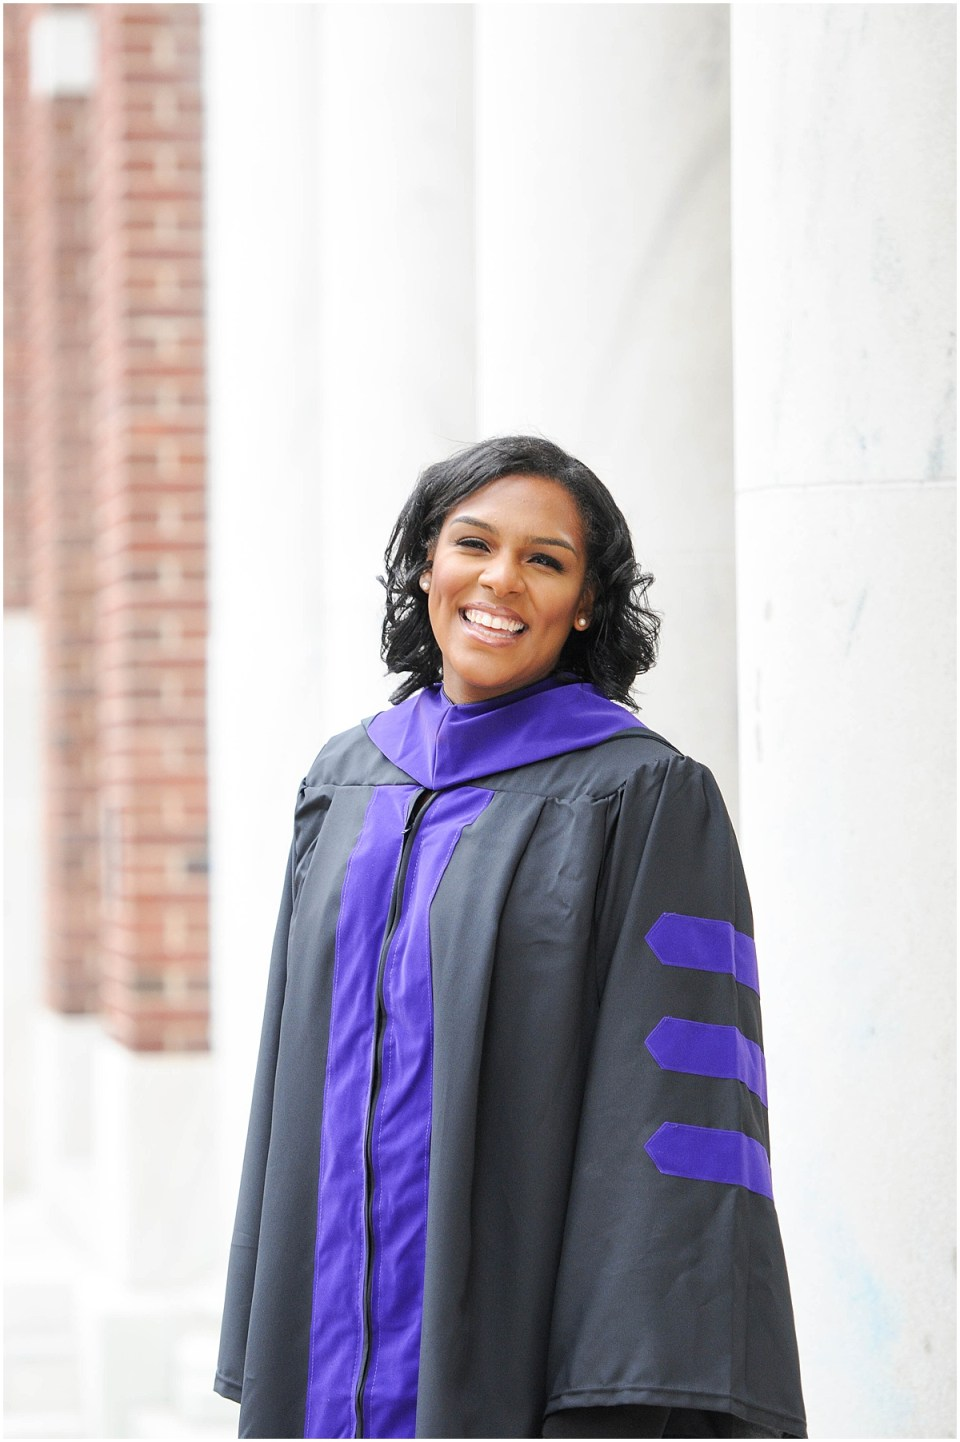 Law school graduation portraits and headshots | University of Maryland | Ana Isabel Photography 11